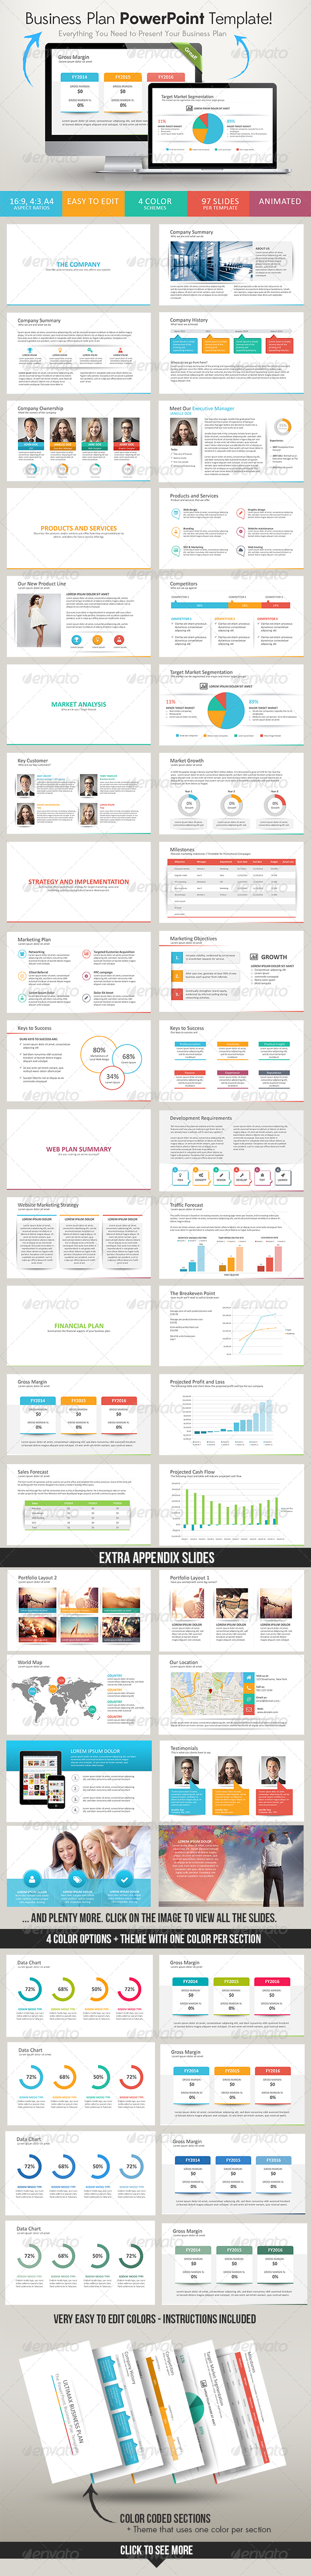 GraphicRiver Ultimax Business Plan PowerPoint Template 7953369